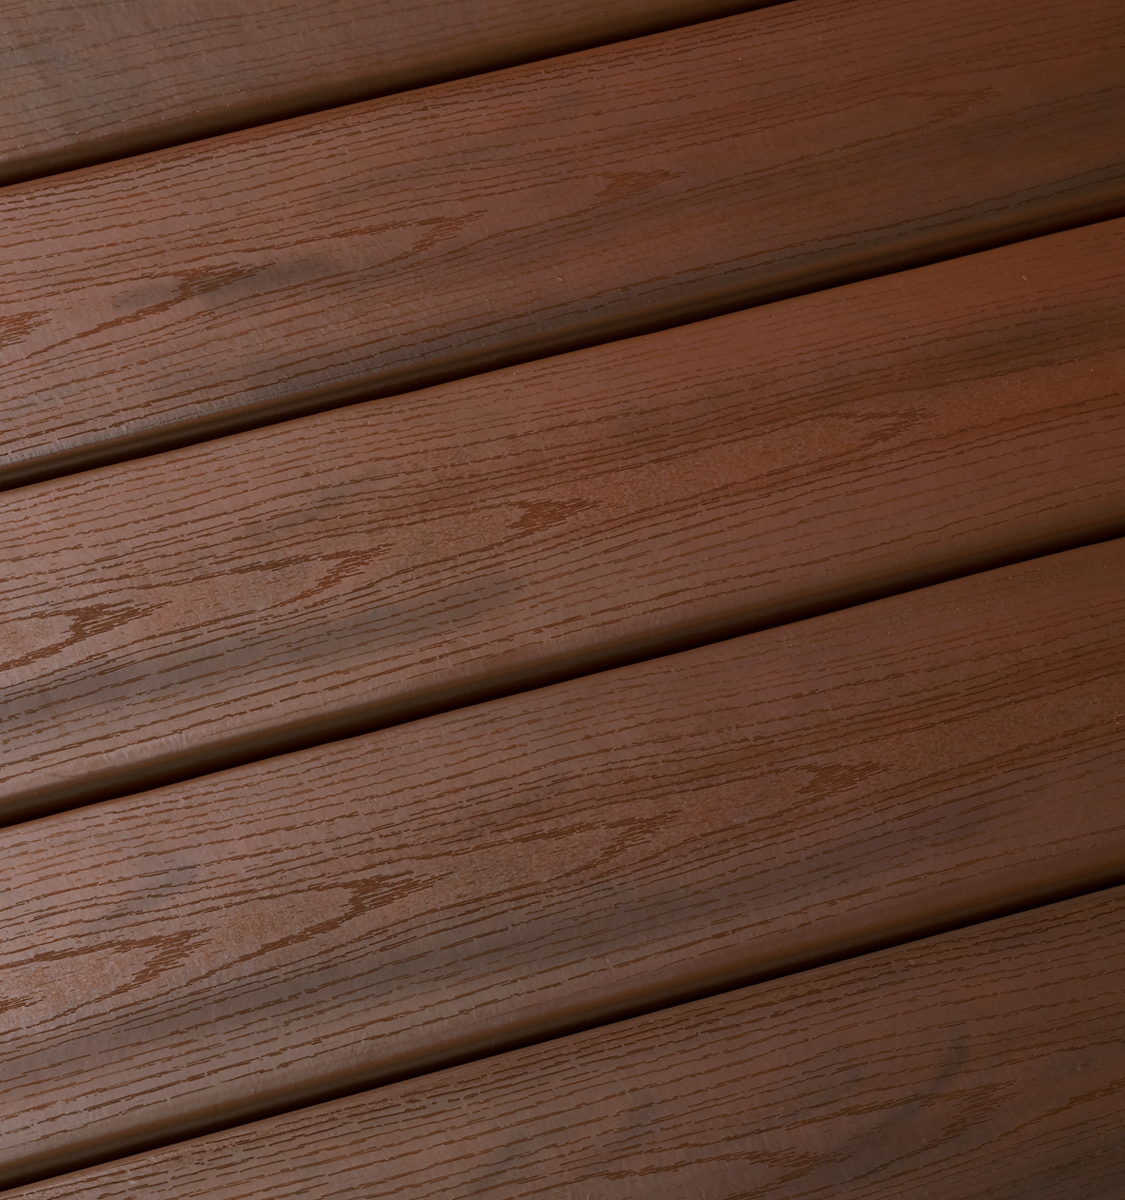 Menards Deck Boards | Home Depot Deck Boards | Cedar Wood Lowes